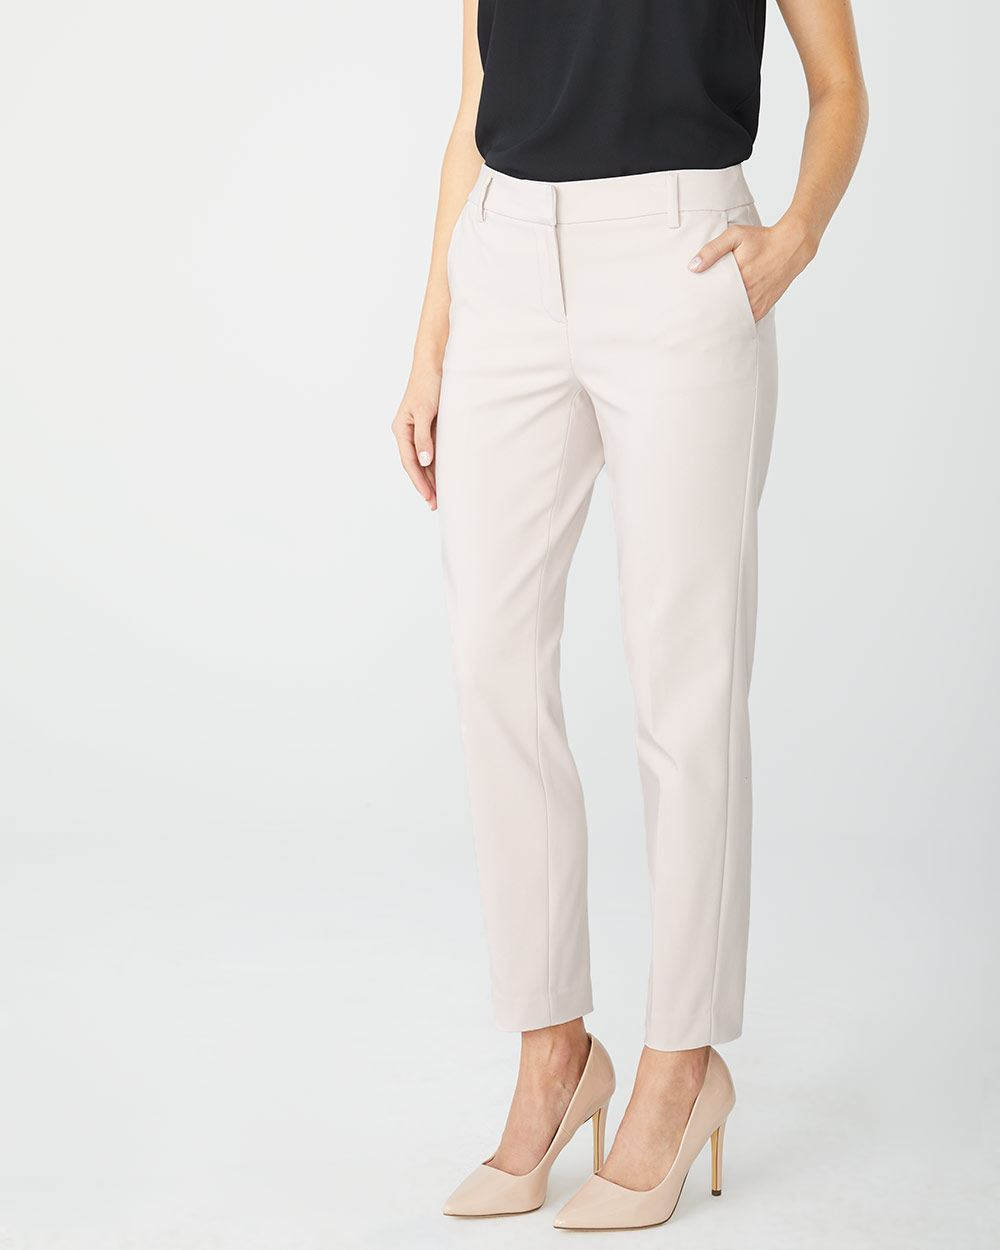 Modern chic Slim fit Slim Leg ankle pant